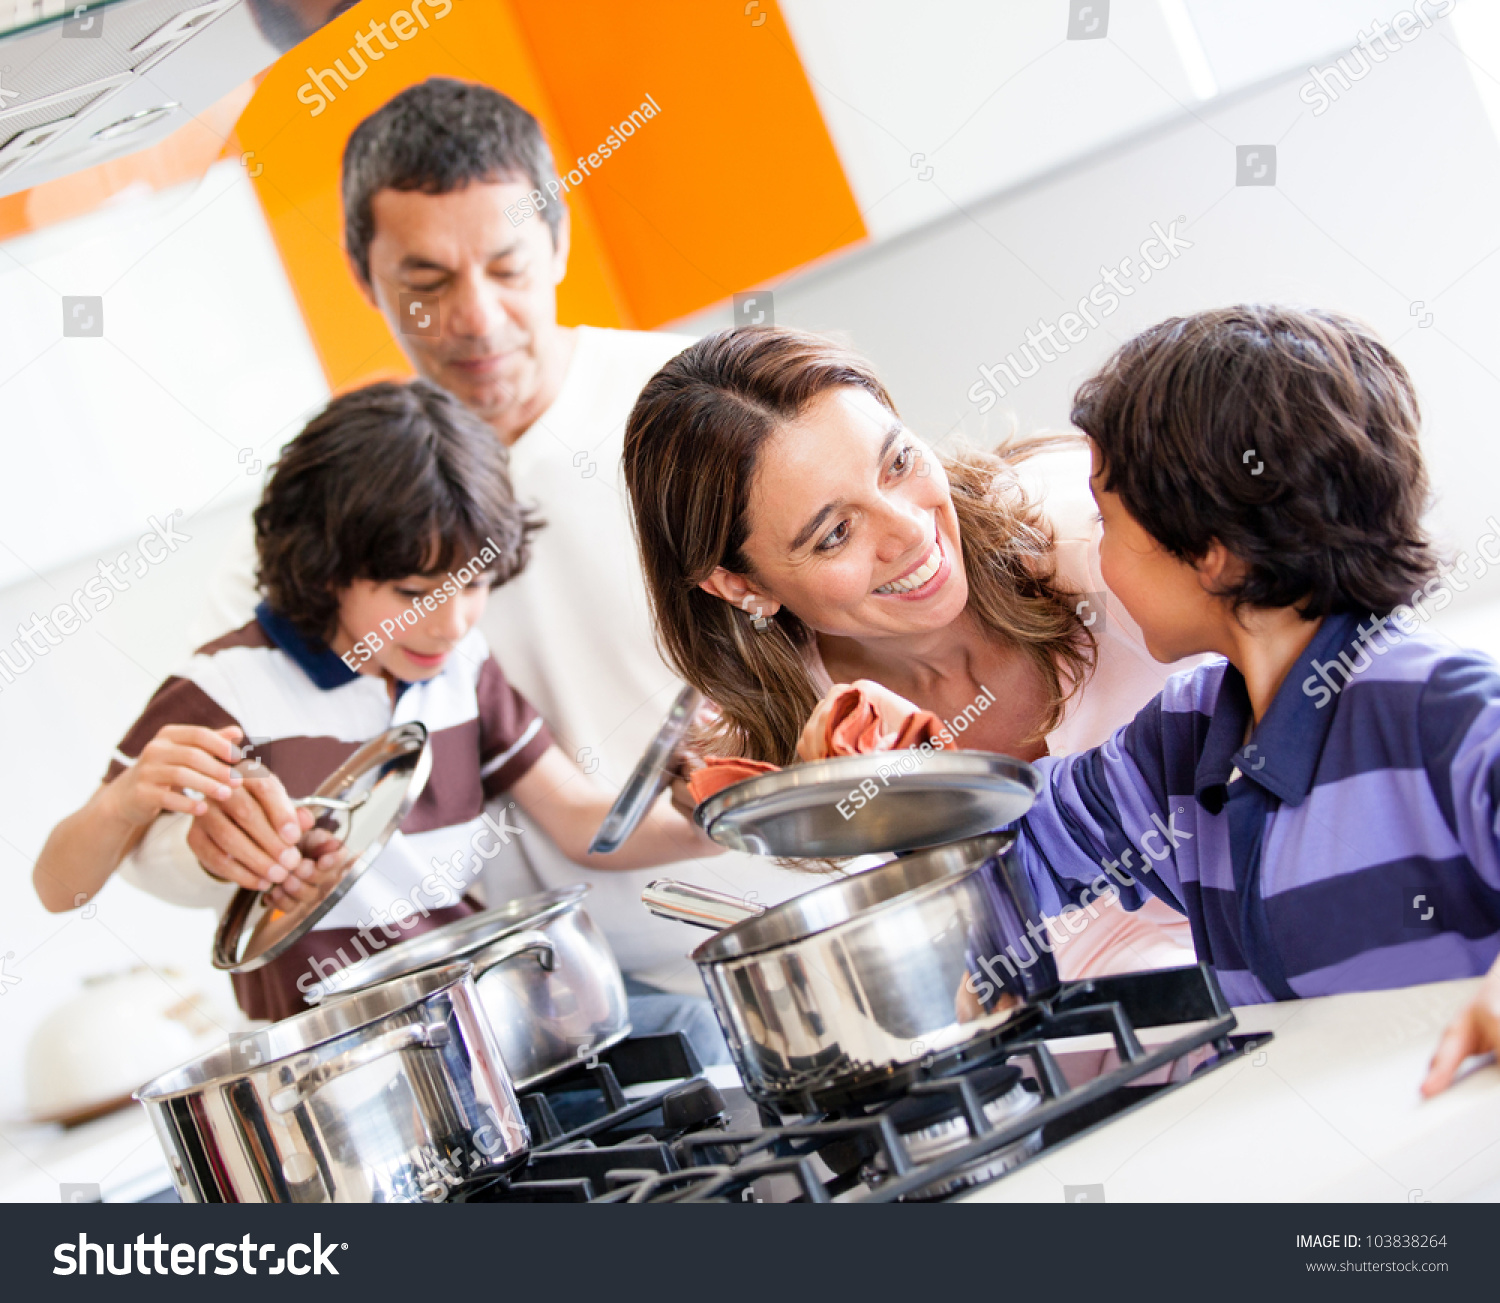 Family cooking kitchen - Family Cooking Kitchen Family Cooking Kitchen Family Cooking Together In The Kitchen And Looking Happy